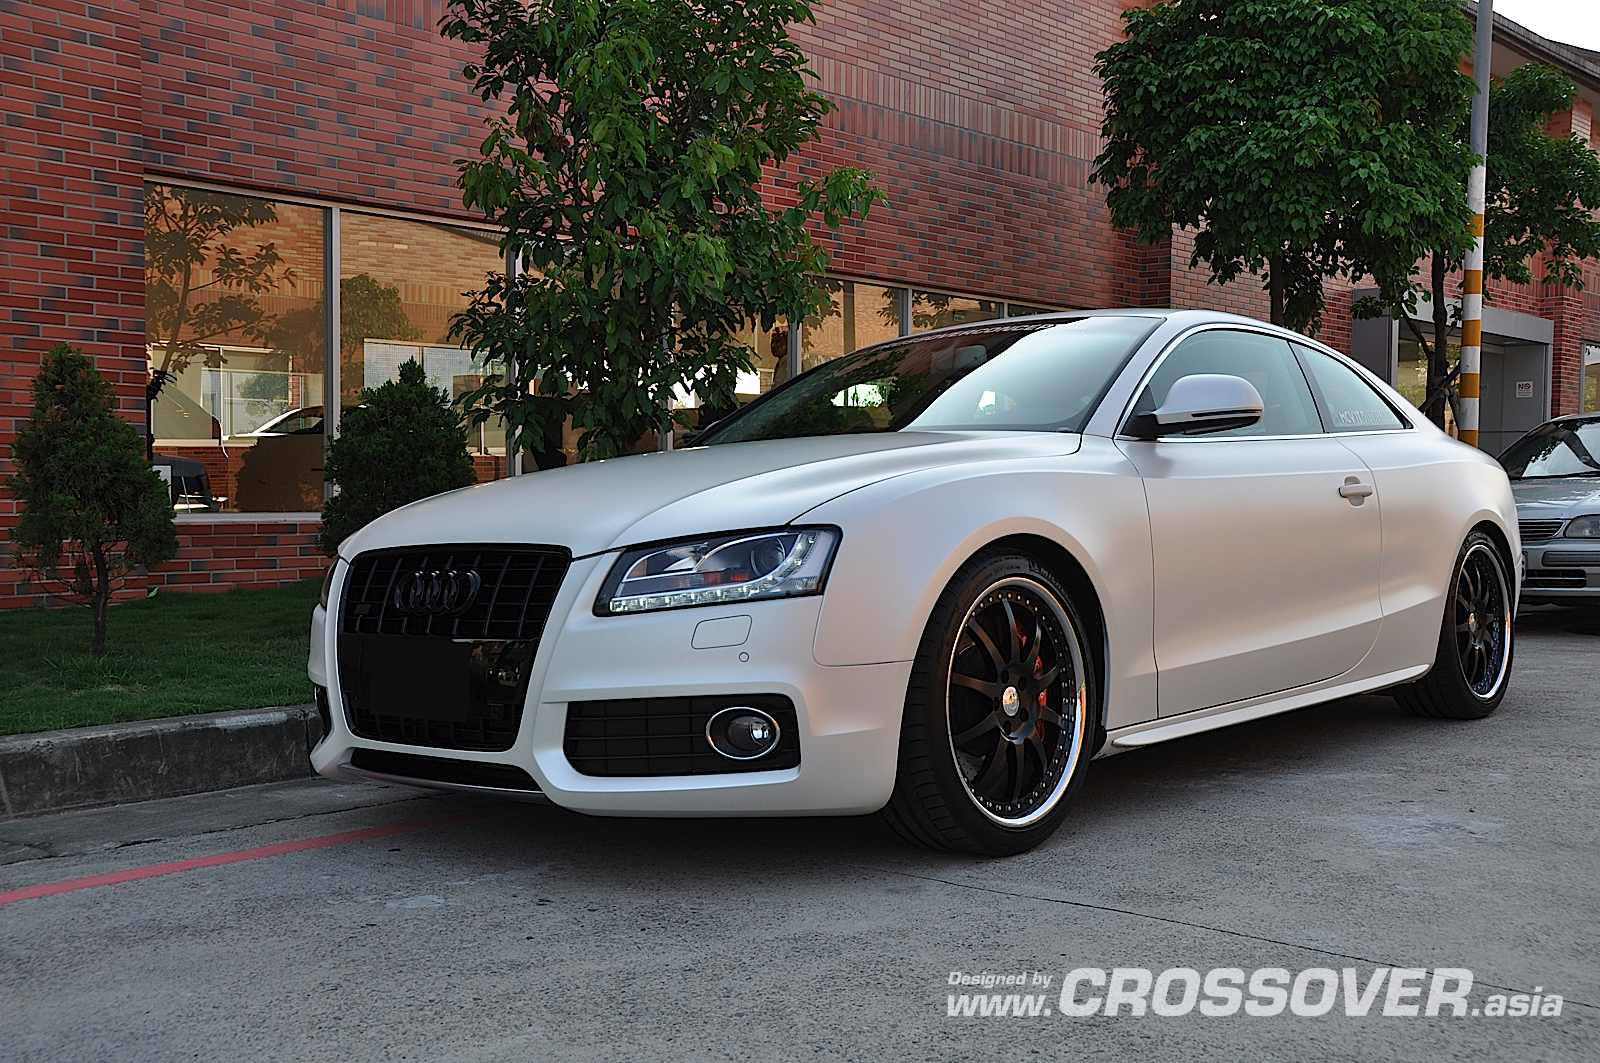 Used Cars For Sale In Ri >> Cars: Audi a5 white